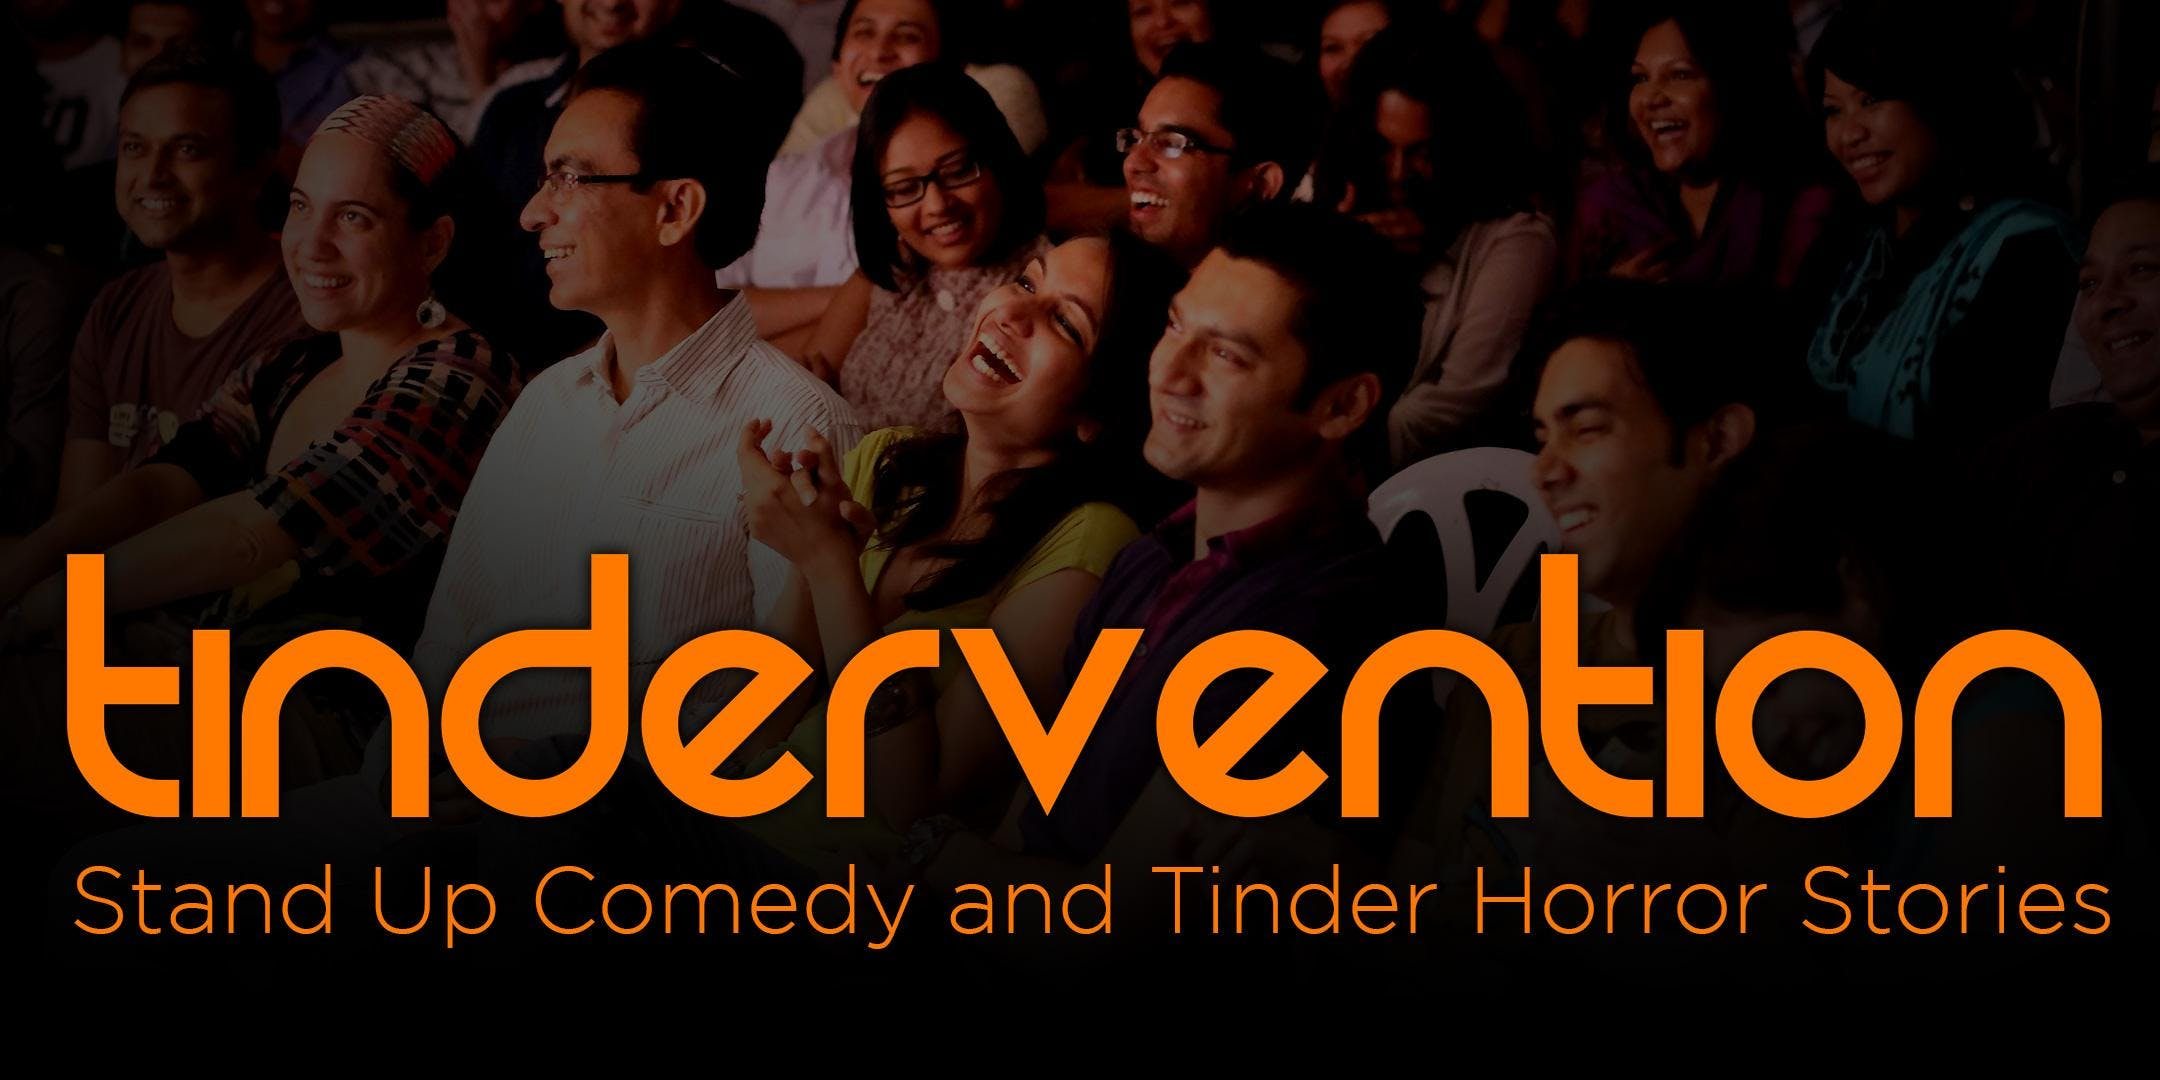 Tindervention: Stand Up Comedy & Tinder Horror Stories at